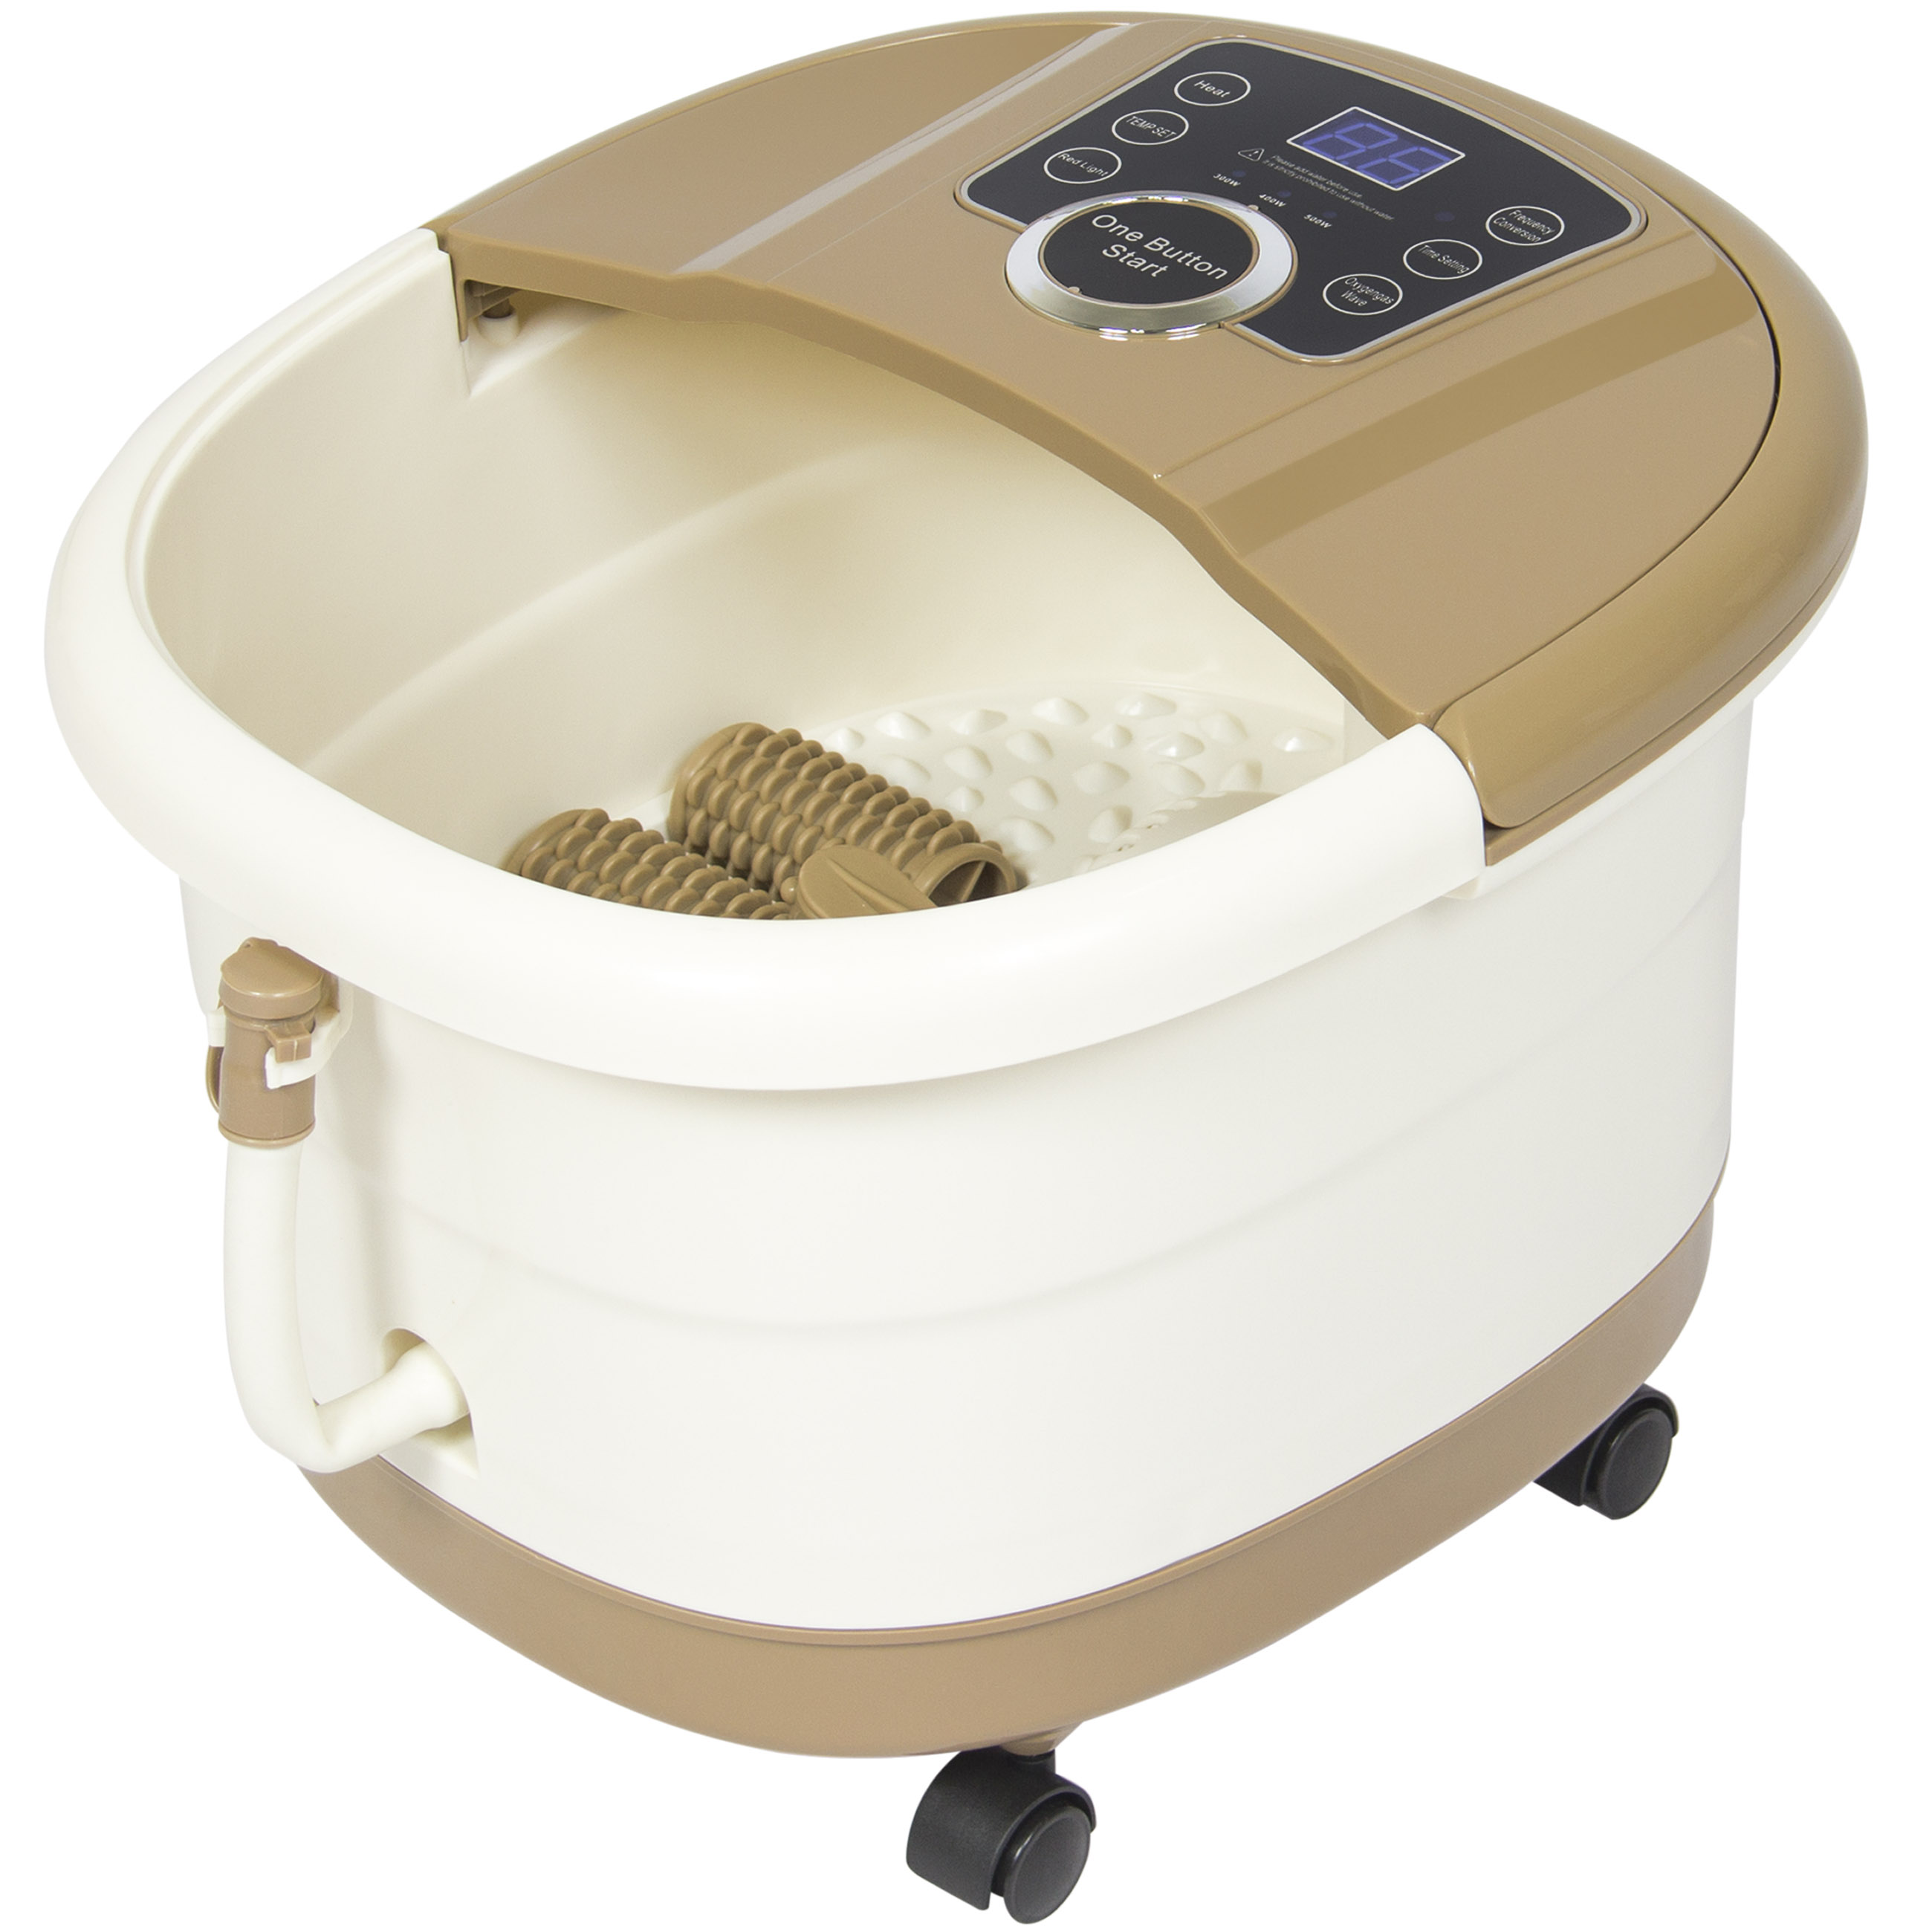 Keep in mind that Heated Foot Spa are different from the Conair Foot Spa so if you are looking for them, then move on the other page of this website. Best Heated Foot Spa in Below is the list of top heated foot spa's which have been summarised after doing a prolong detailed market research on them.